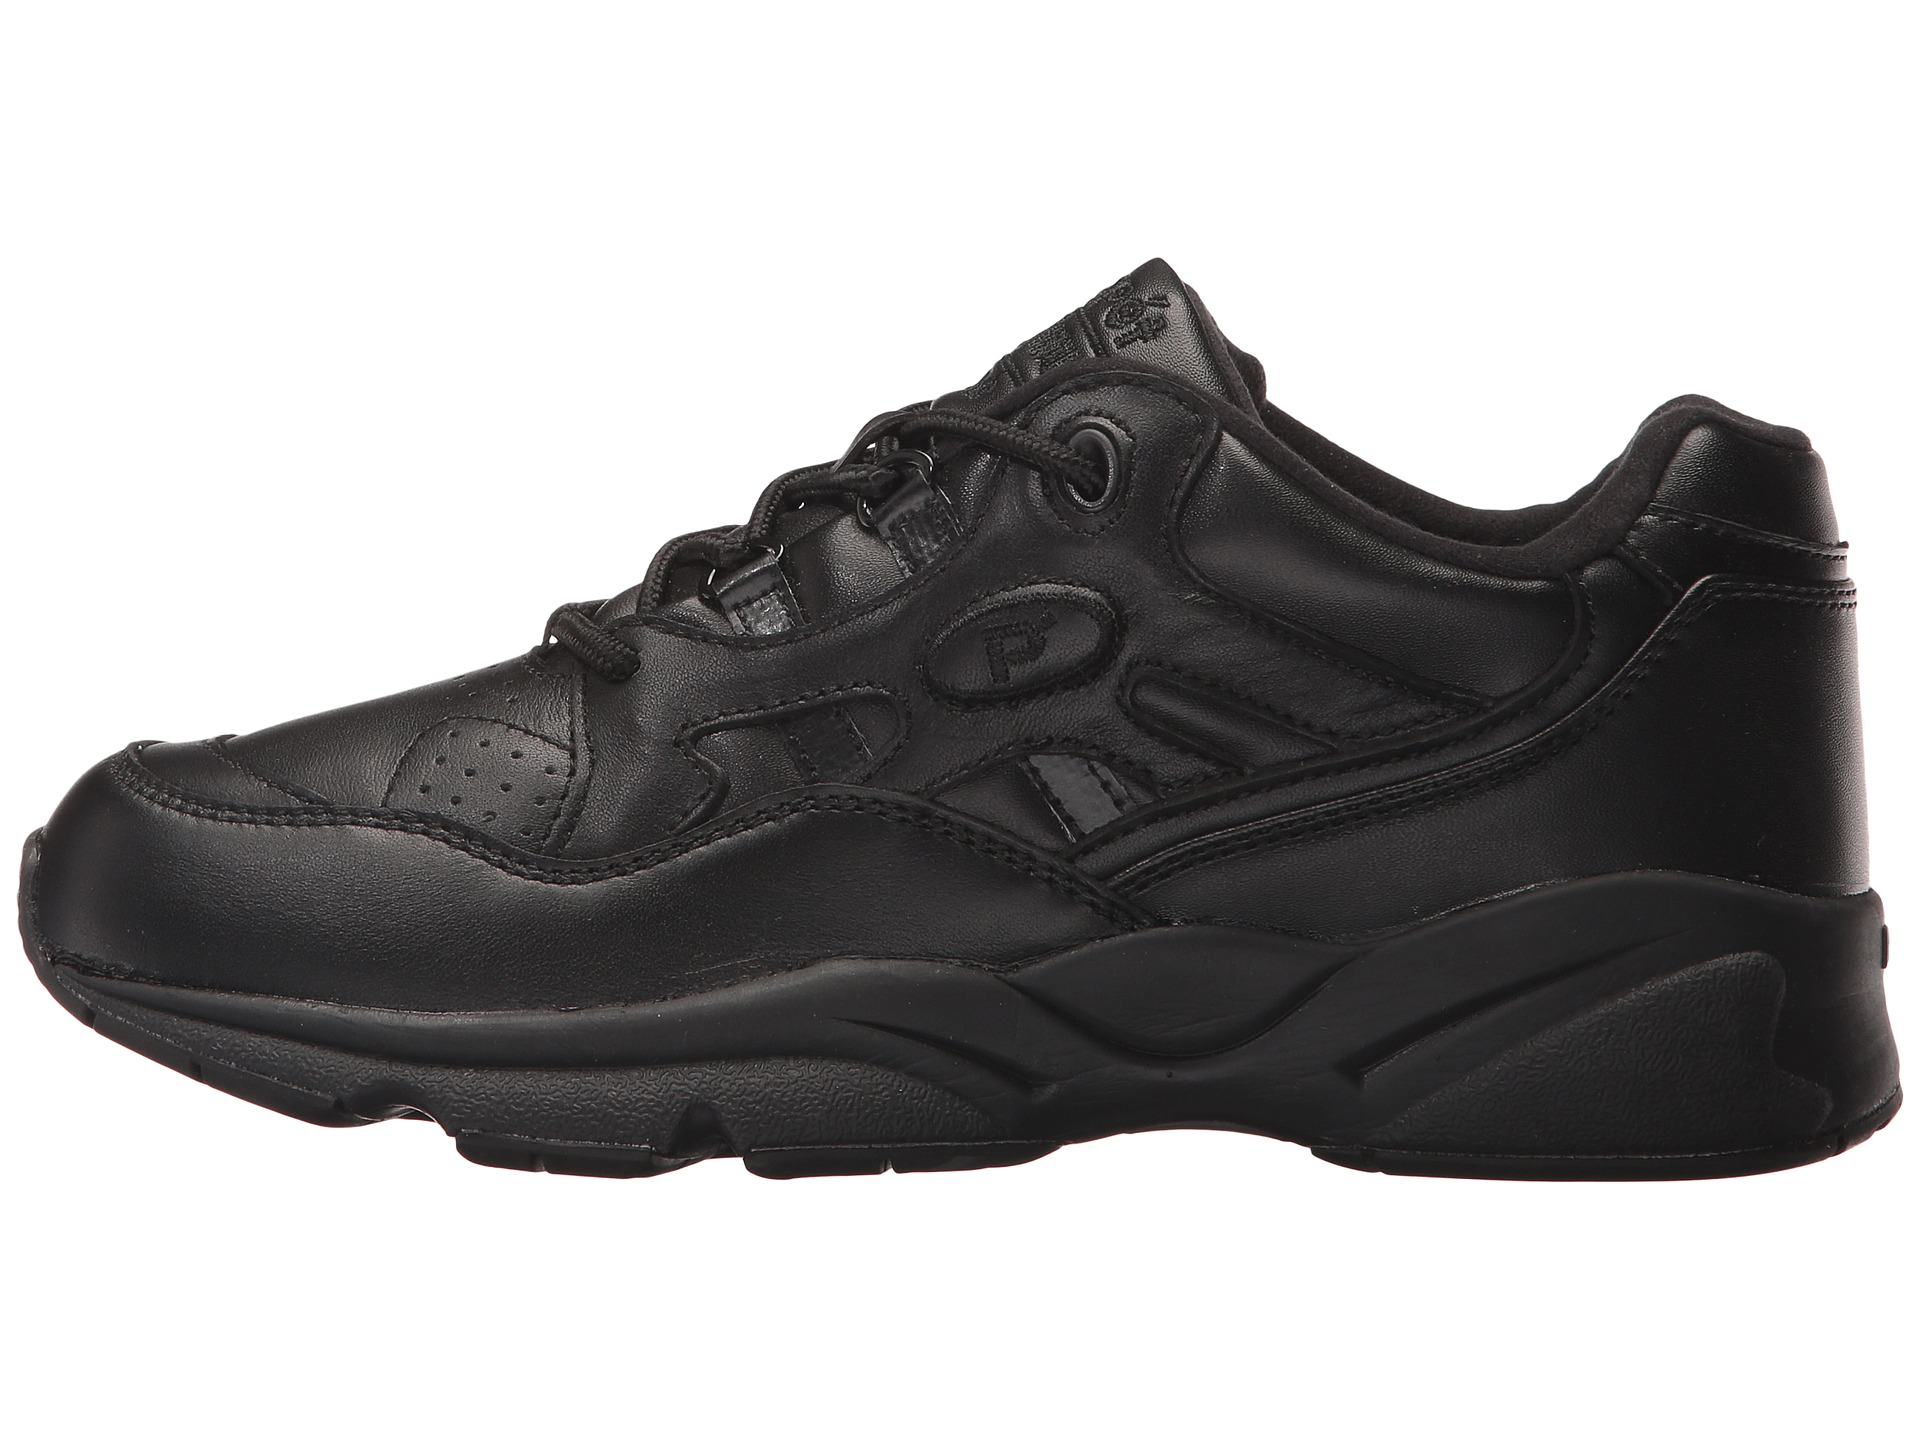 asics medicare approved shoes